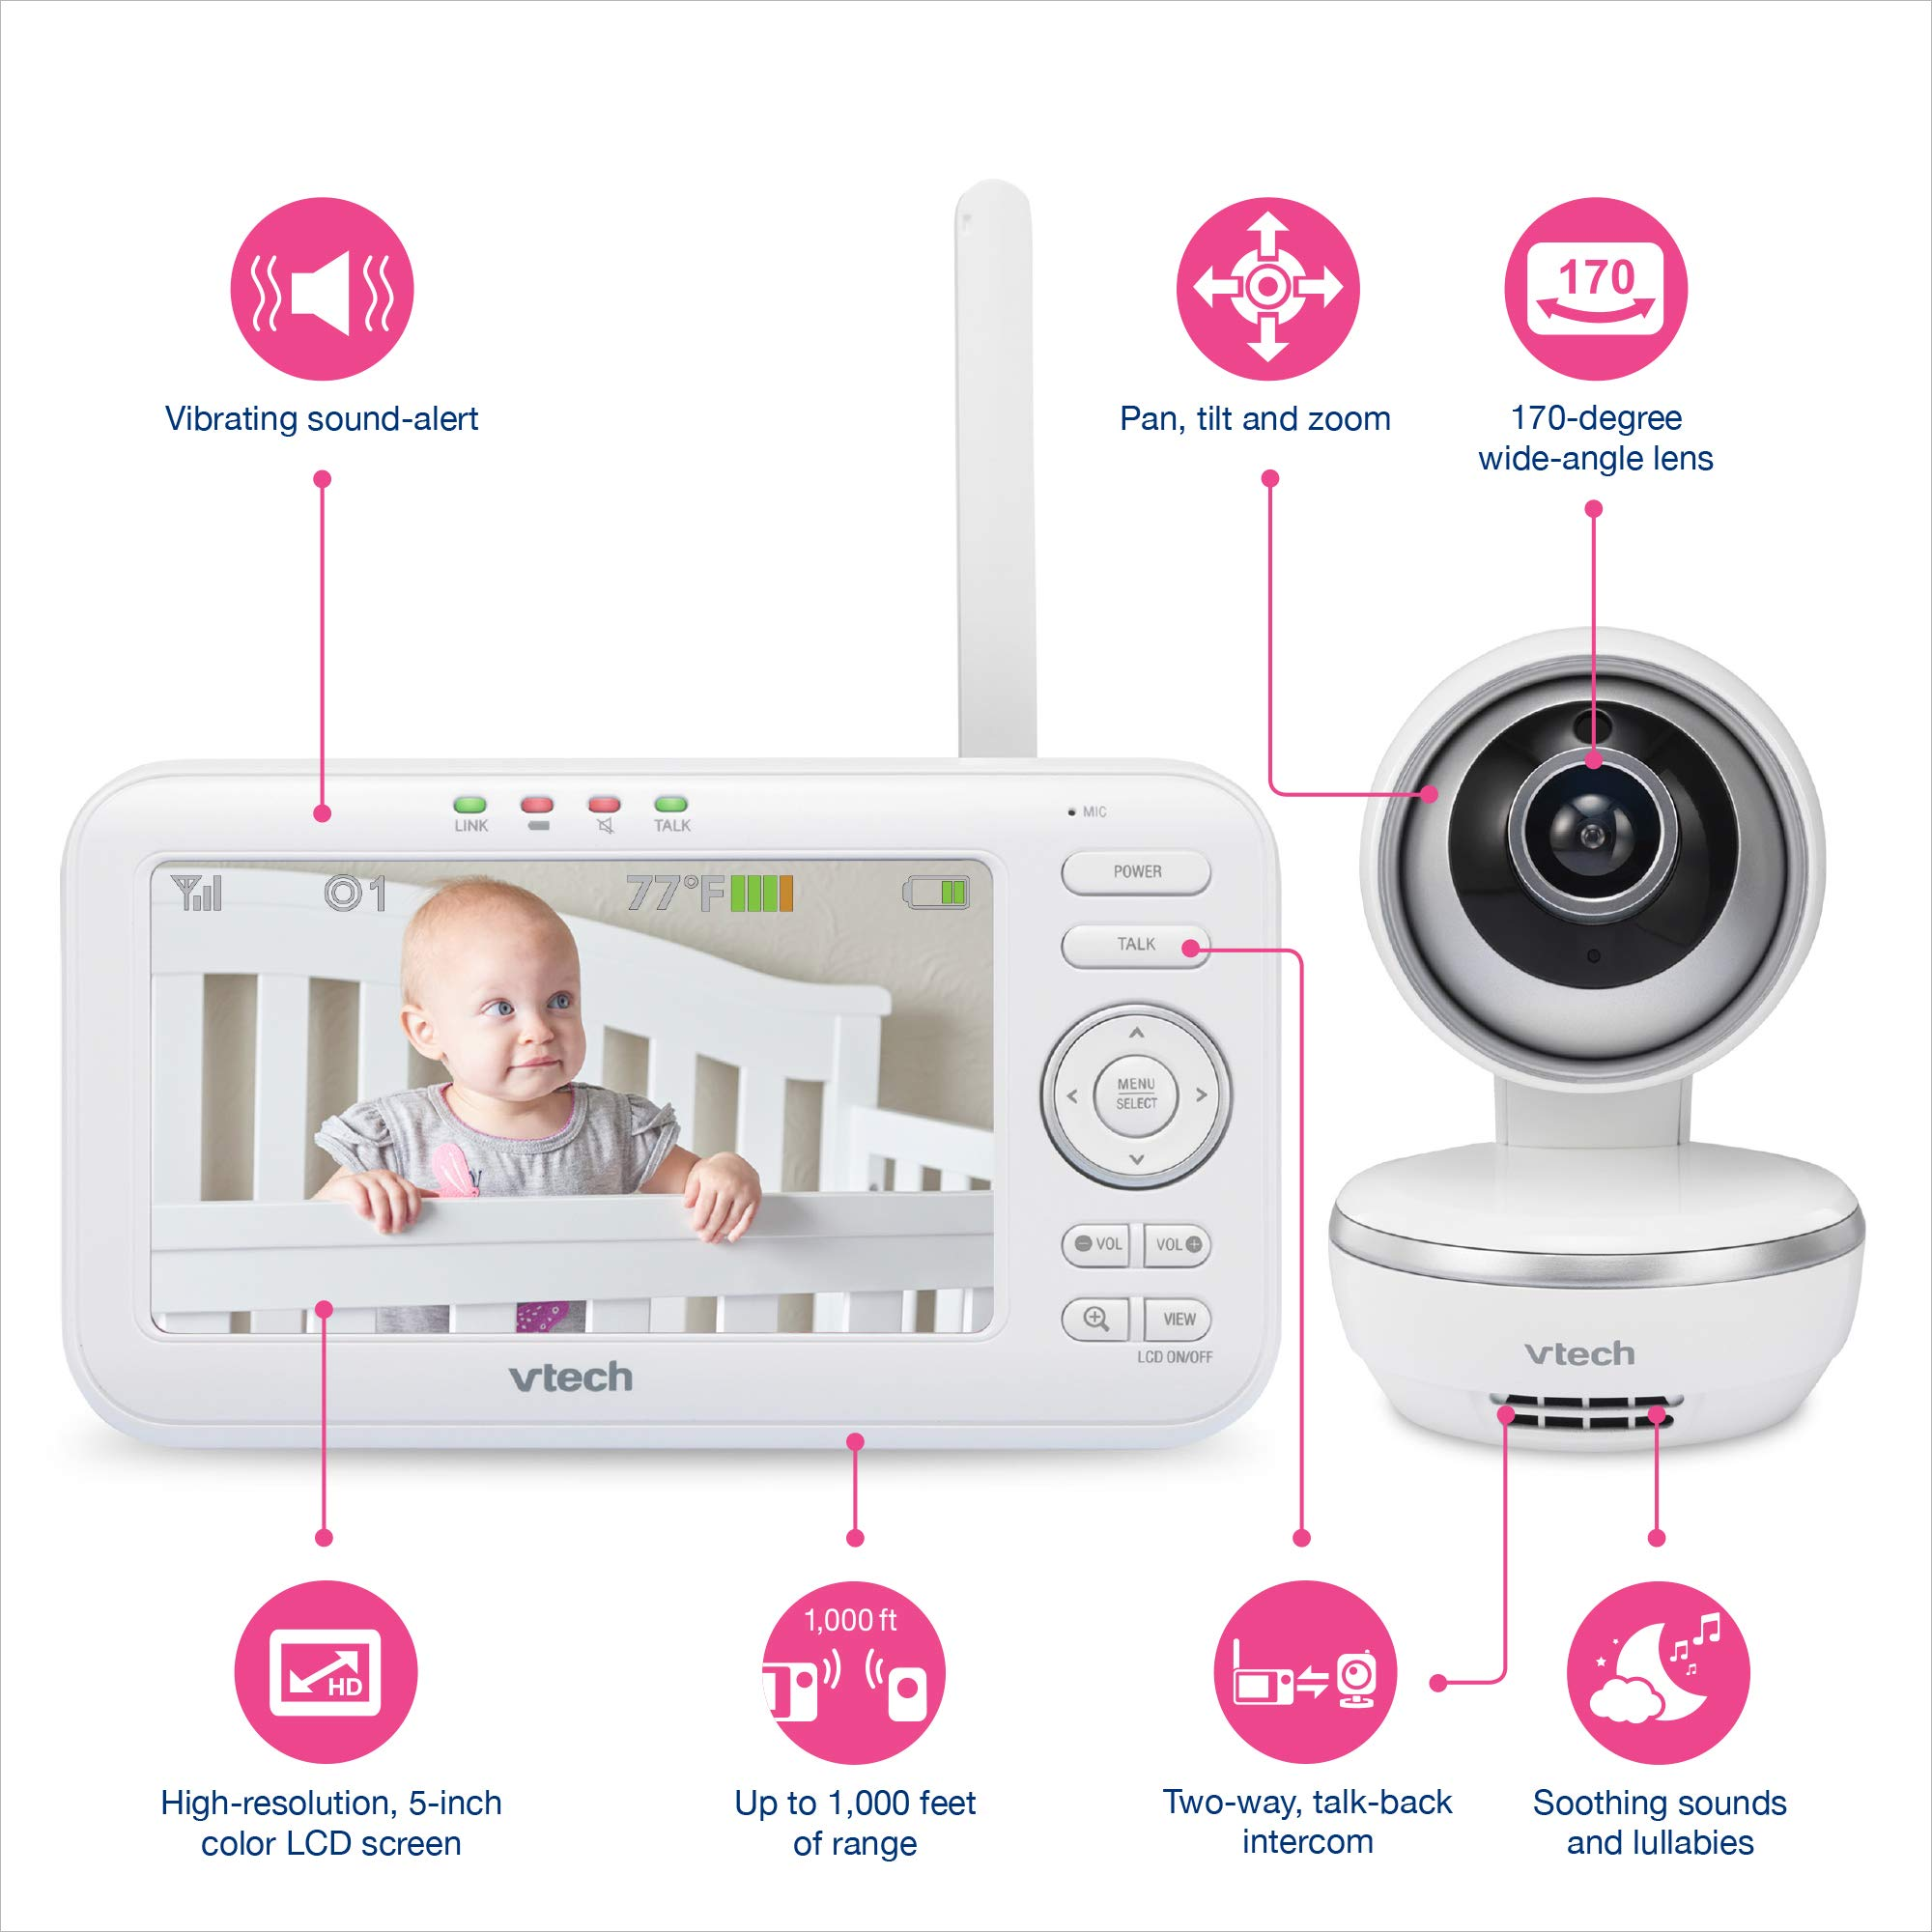 "VTech VM5261 5"" Digital Video Baby Monitor with Pan & Tilt Camera, Wide-Angle Lens and Standard Lens, White by VTech (Image #9)"